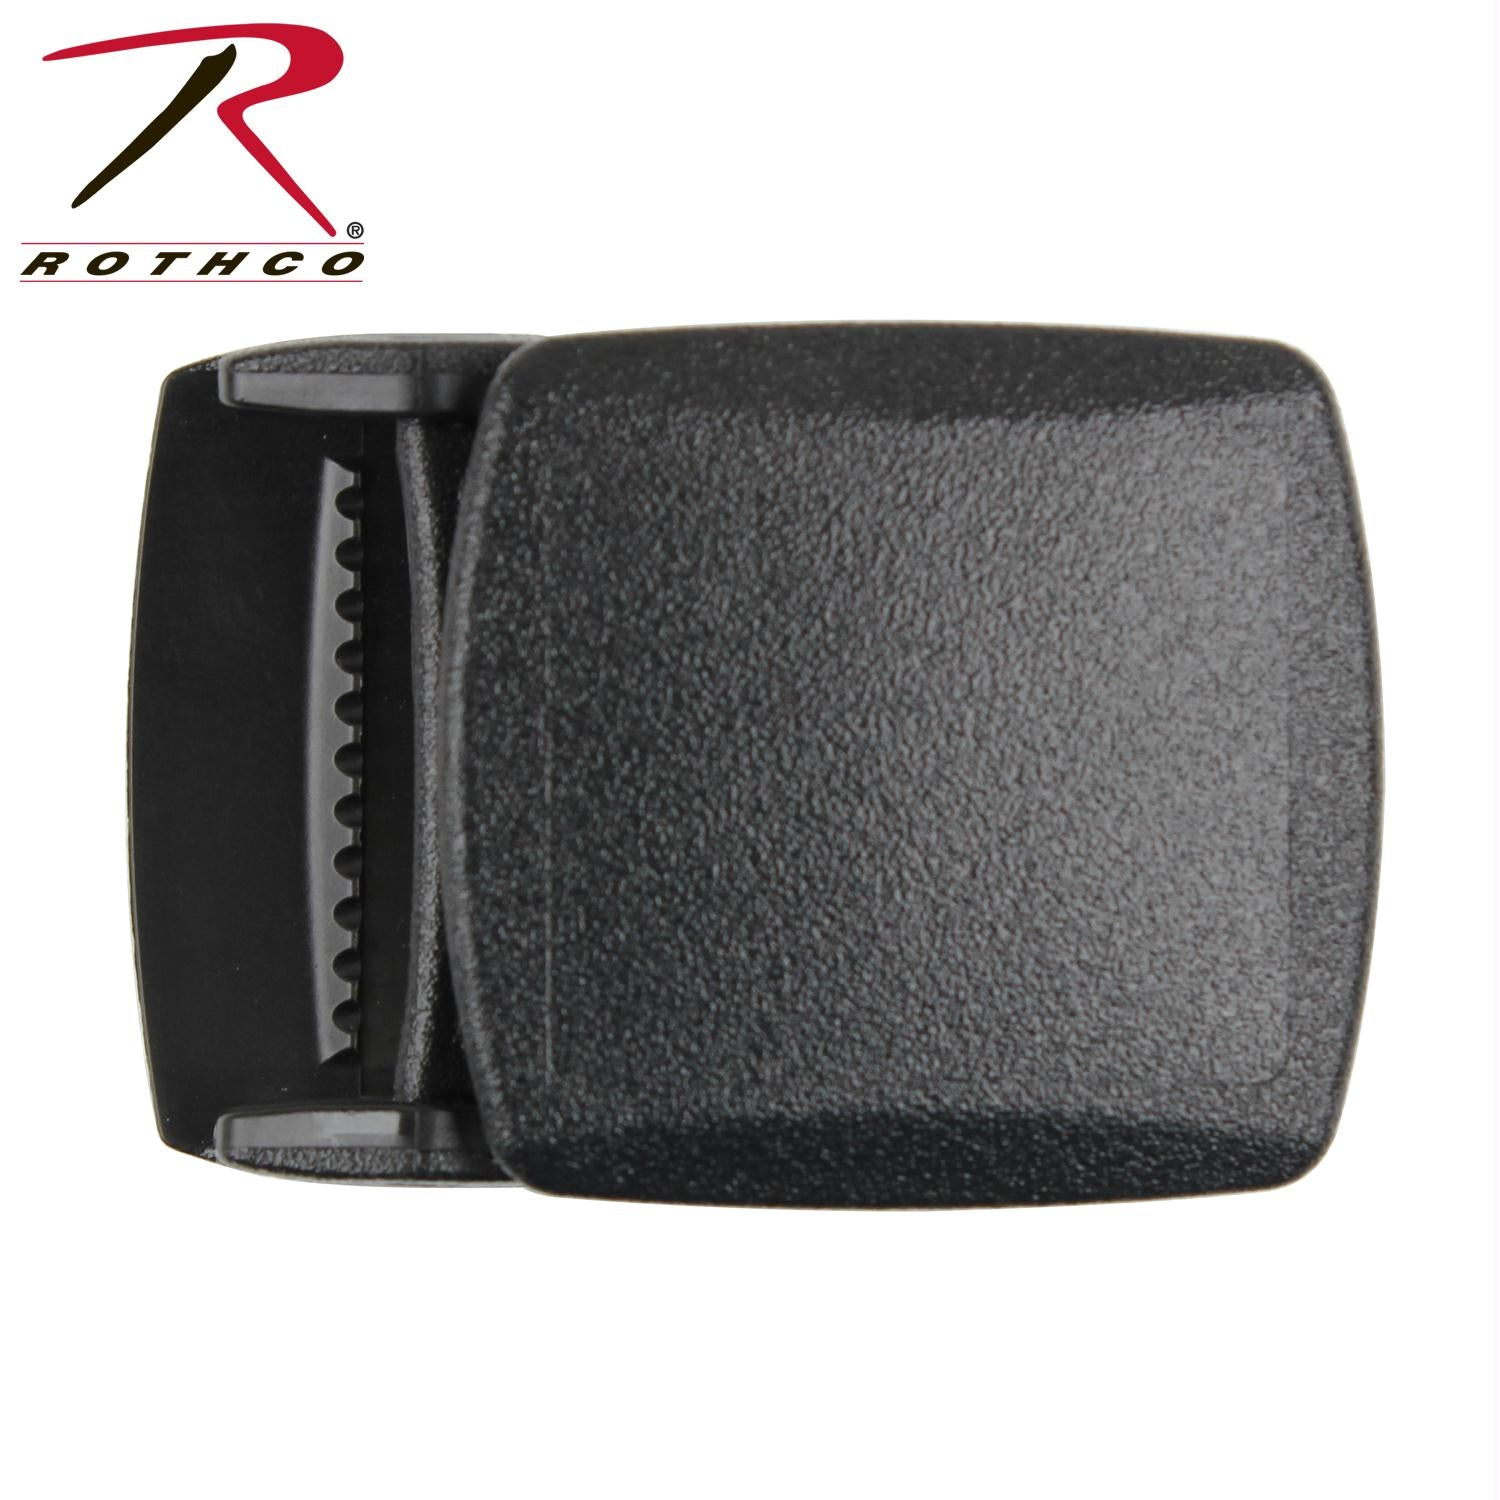 Rothco Plastic Web Belt Buckle - Black / One Size